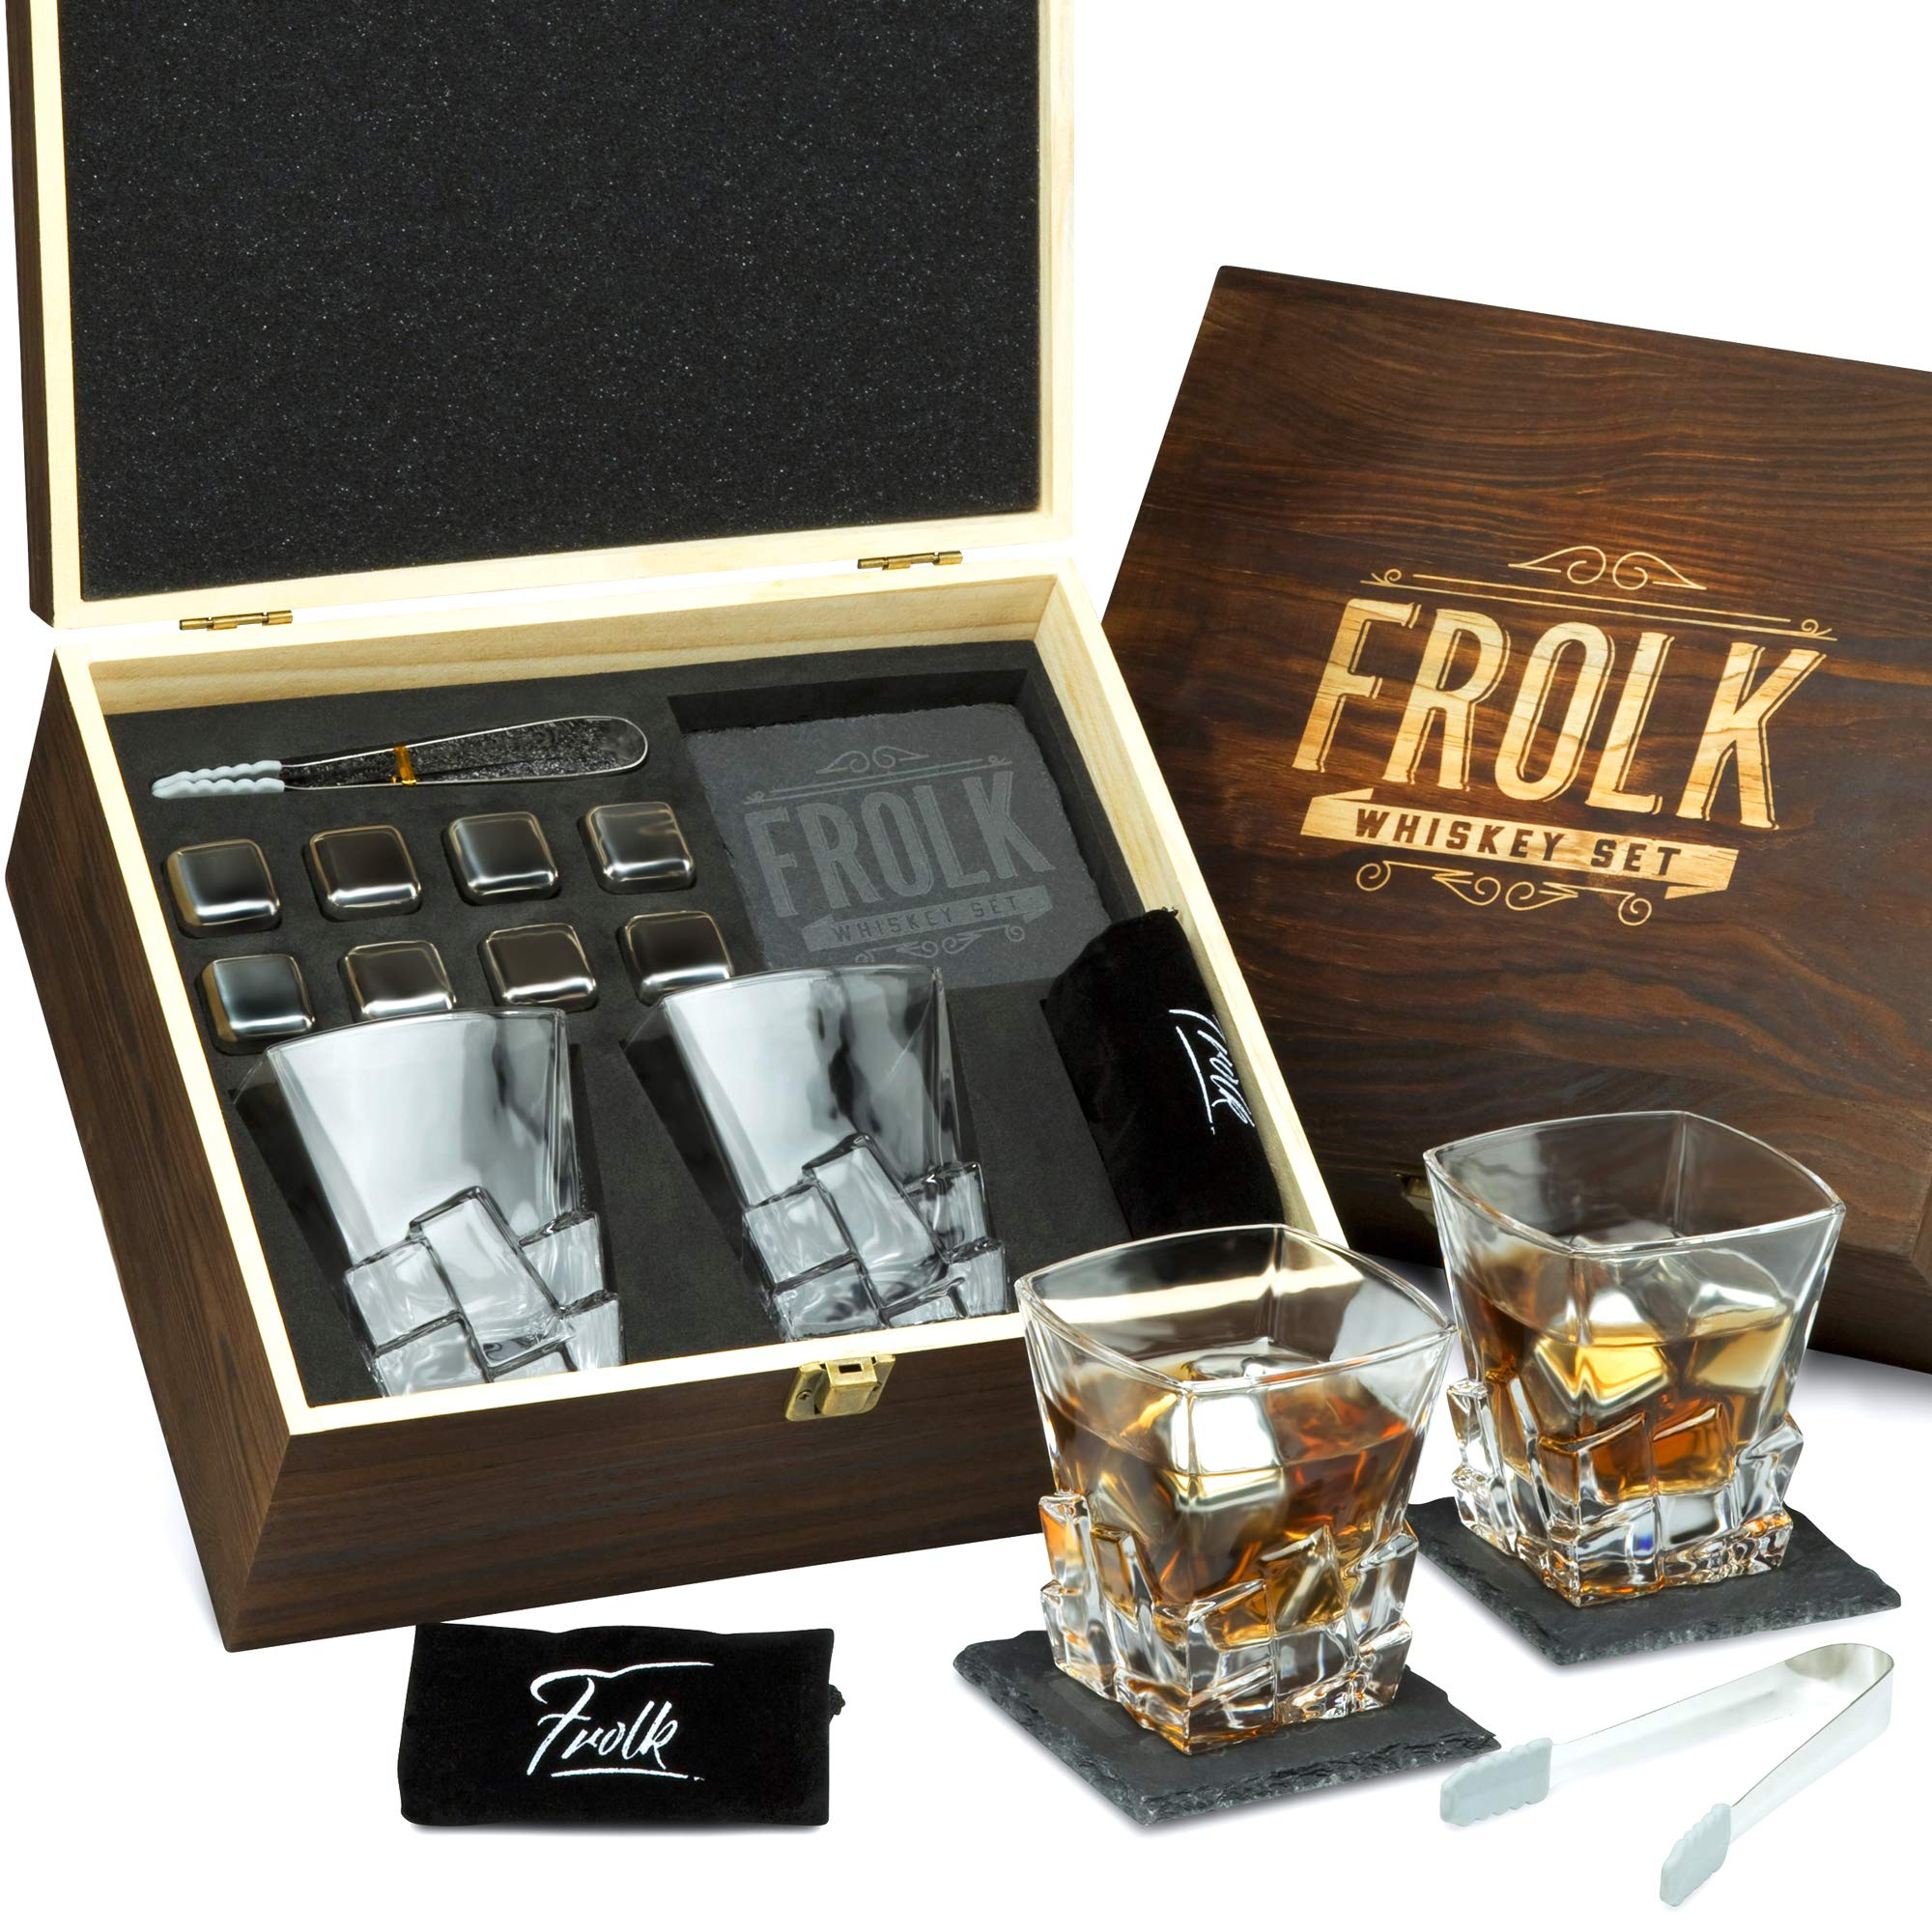 Whiskey Stones Gift Set for Men - 8 Chilling Stainless-Steel Whiskey Cubes, 2 Large Classic Glasses 11oz, Slate Stone Coasters, Velvet Storage Pouch, Silicone-Tipped Tongs in a Real Pinewood Box